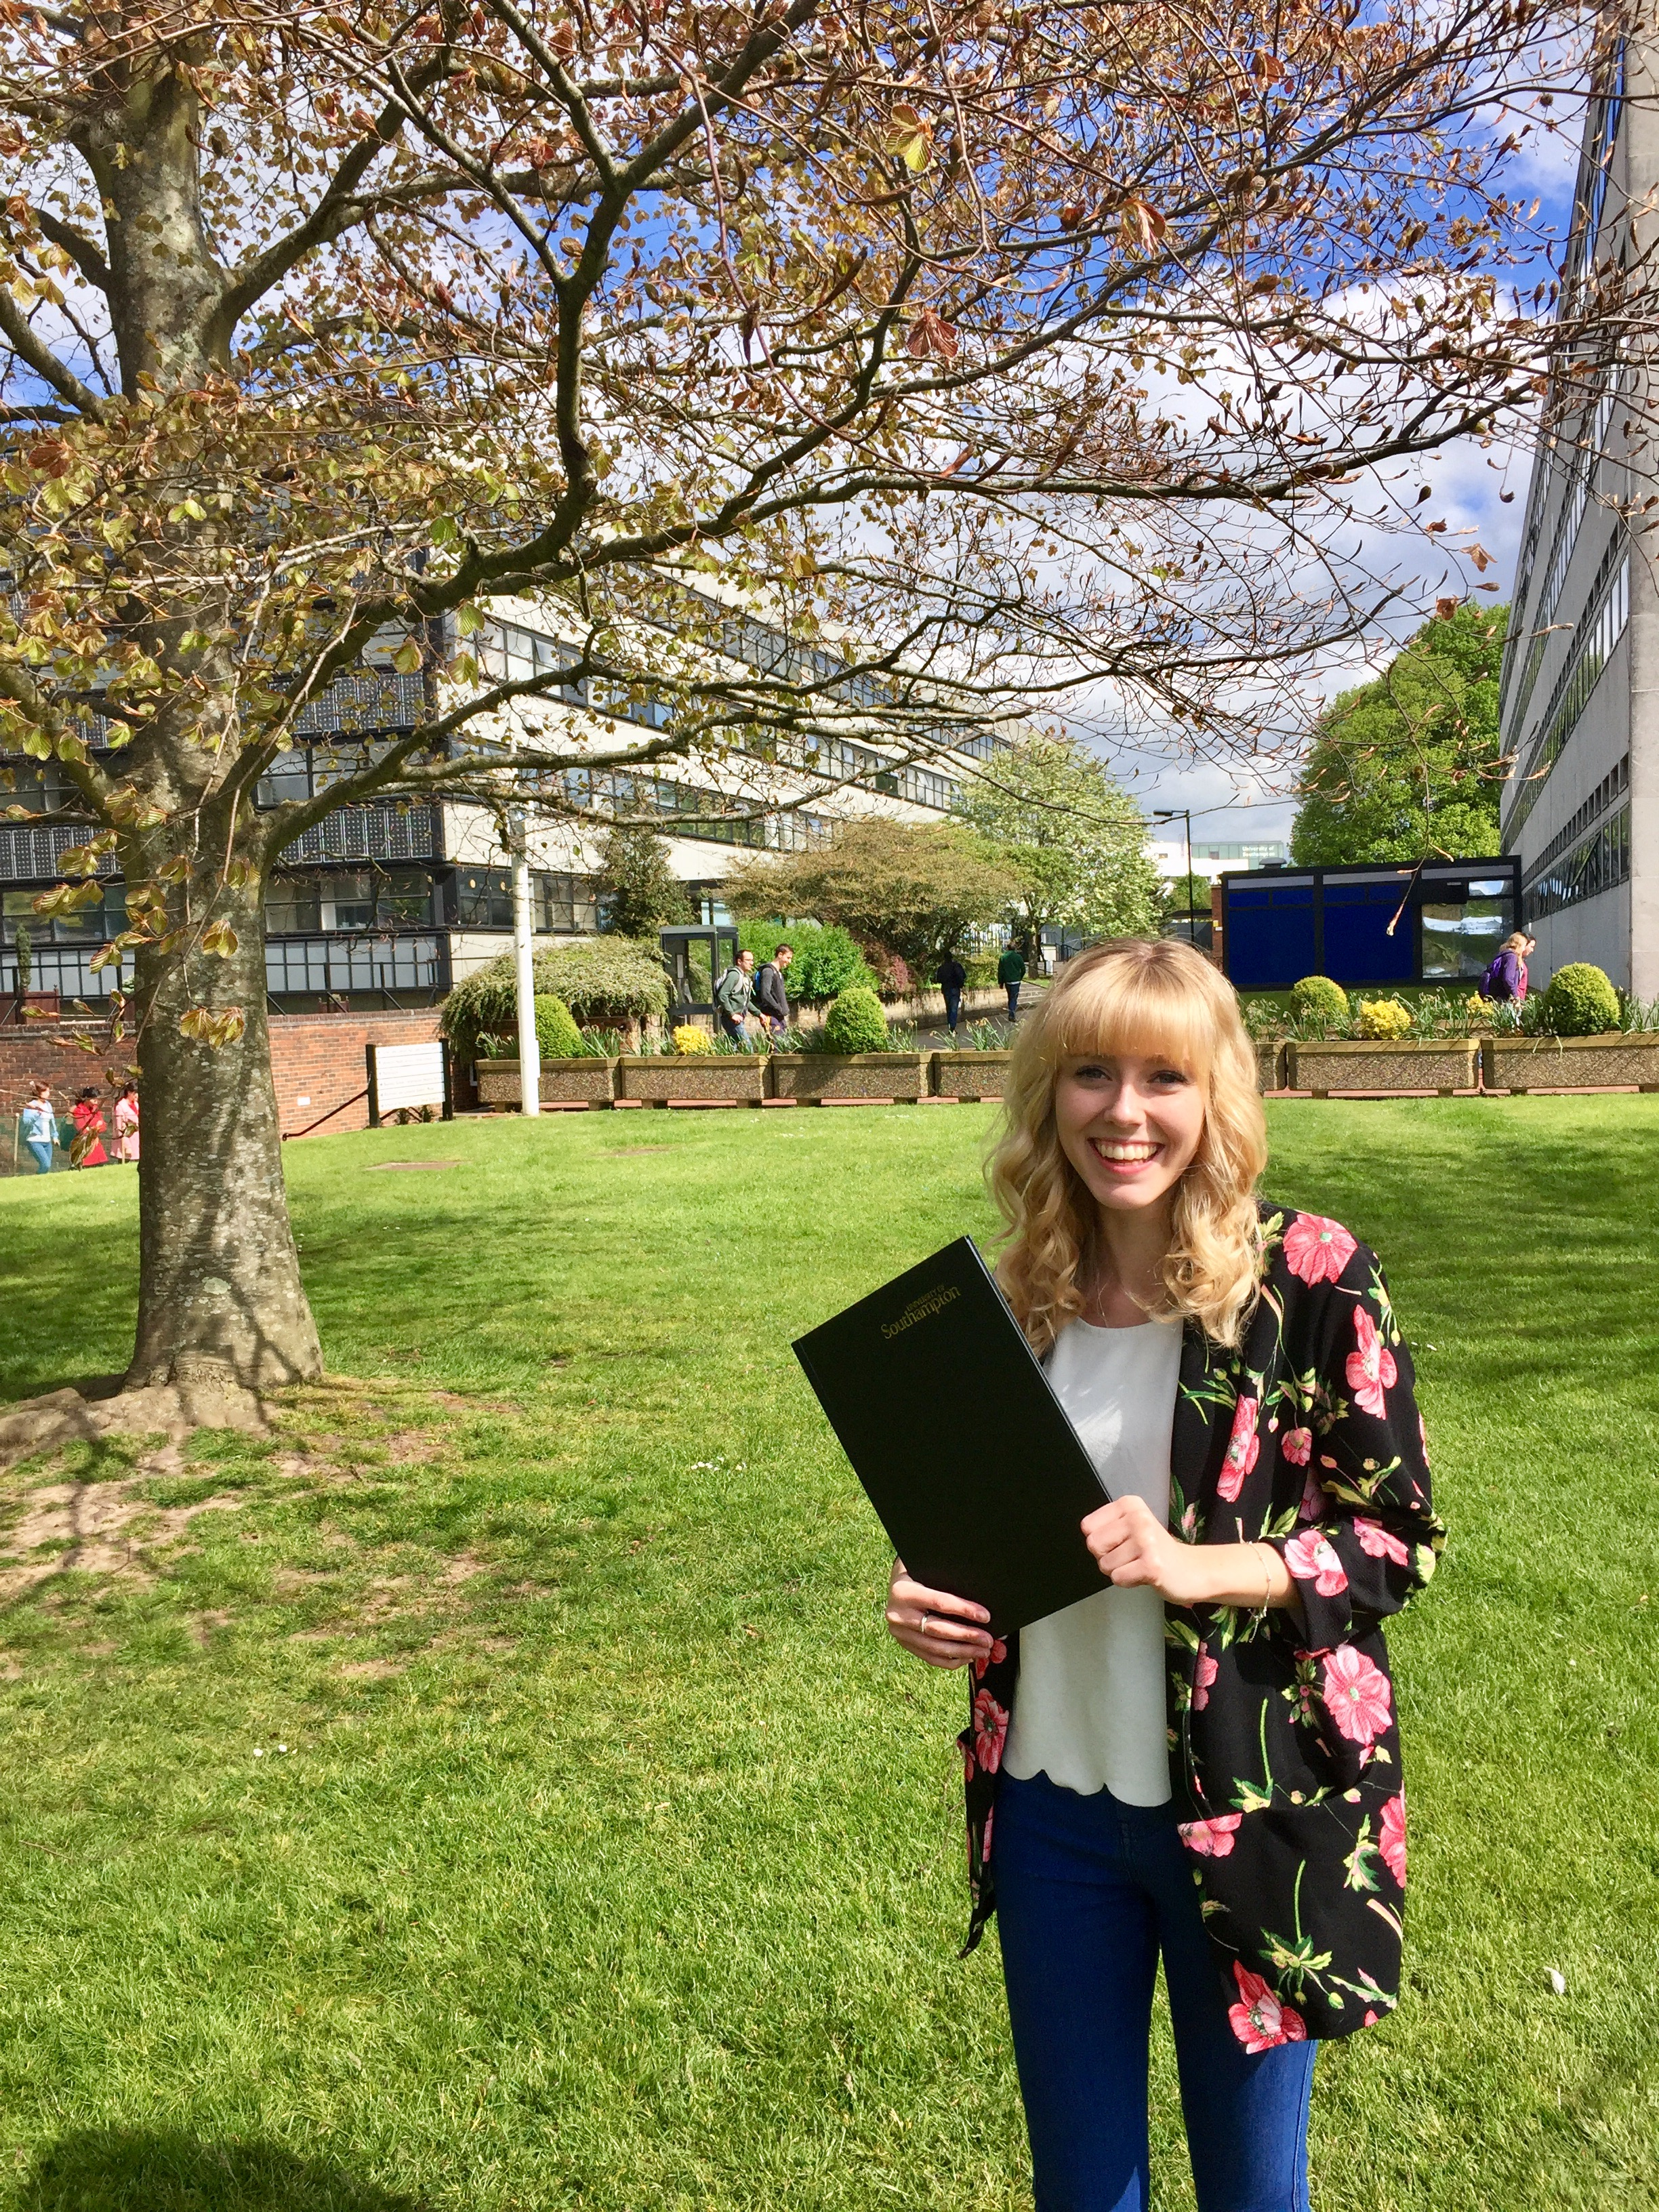 Beth and her dissertation - the joy and relief of completion . . .